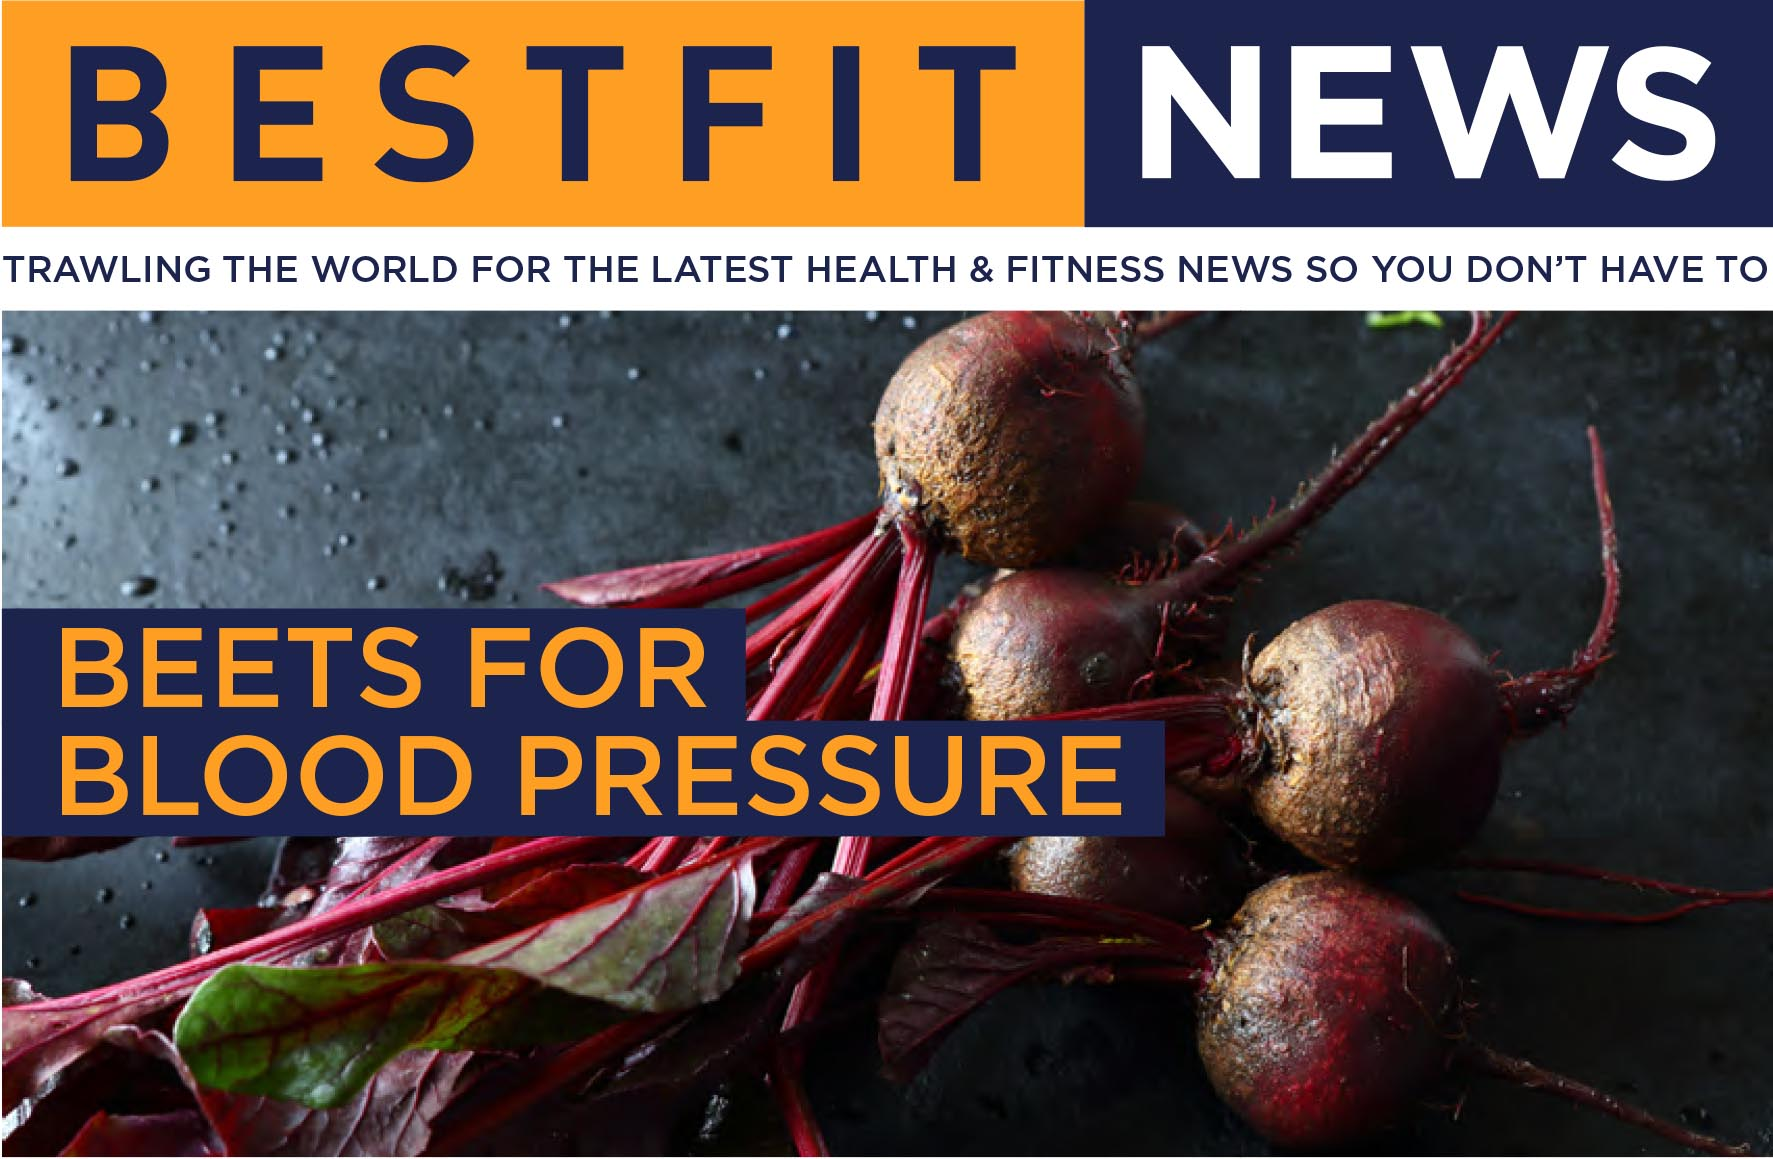 Bestfit issue 10 news header